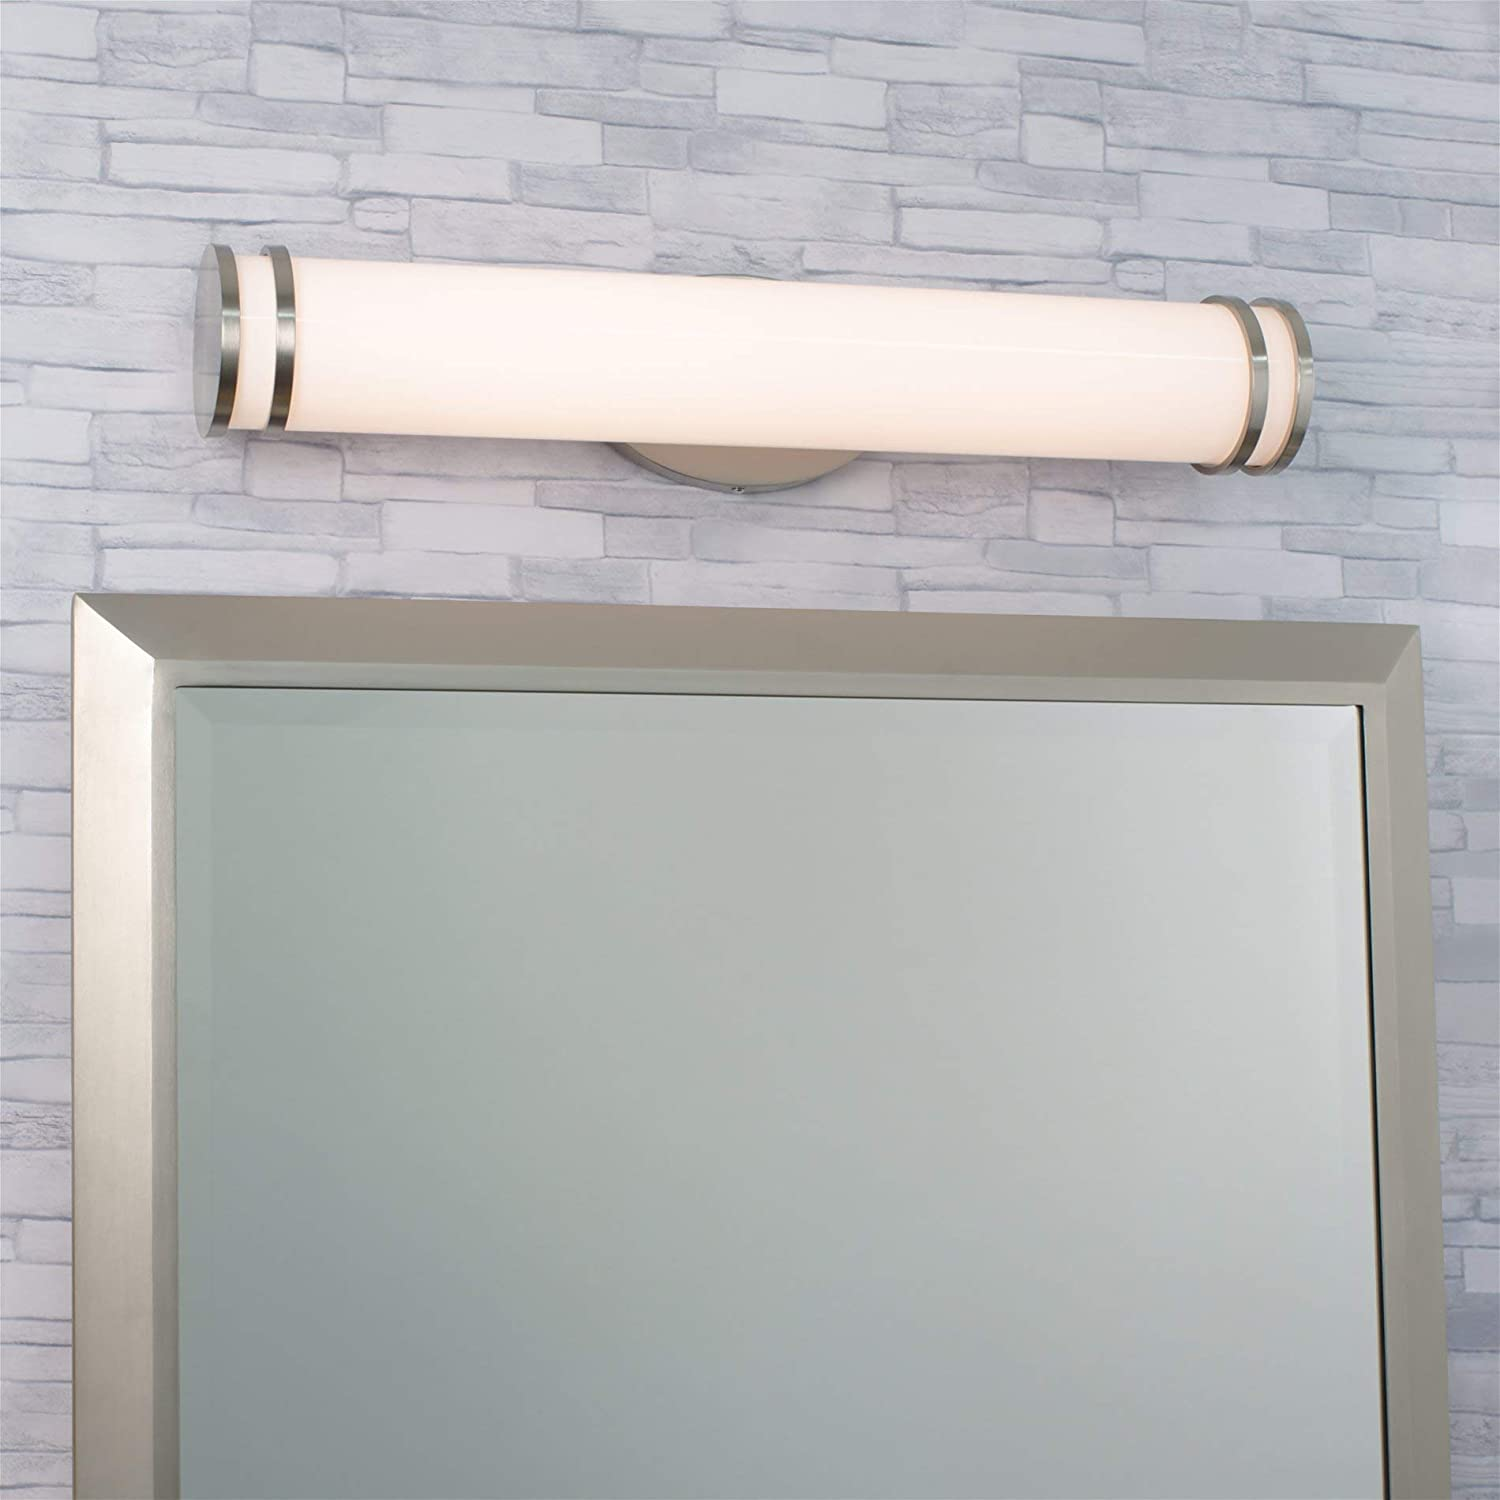 Kira Home Odin 24 Modern Linear Bathroom Vanity Light Integrated 20W LED Vertical or Horizontal Frosted Cylinder Shade Energy Efficient 2700k Warm White Light Brushed Nickel Finish